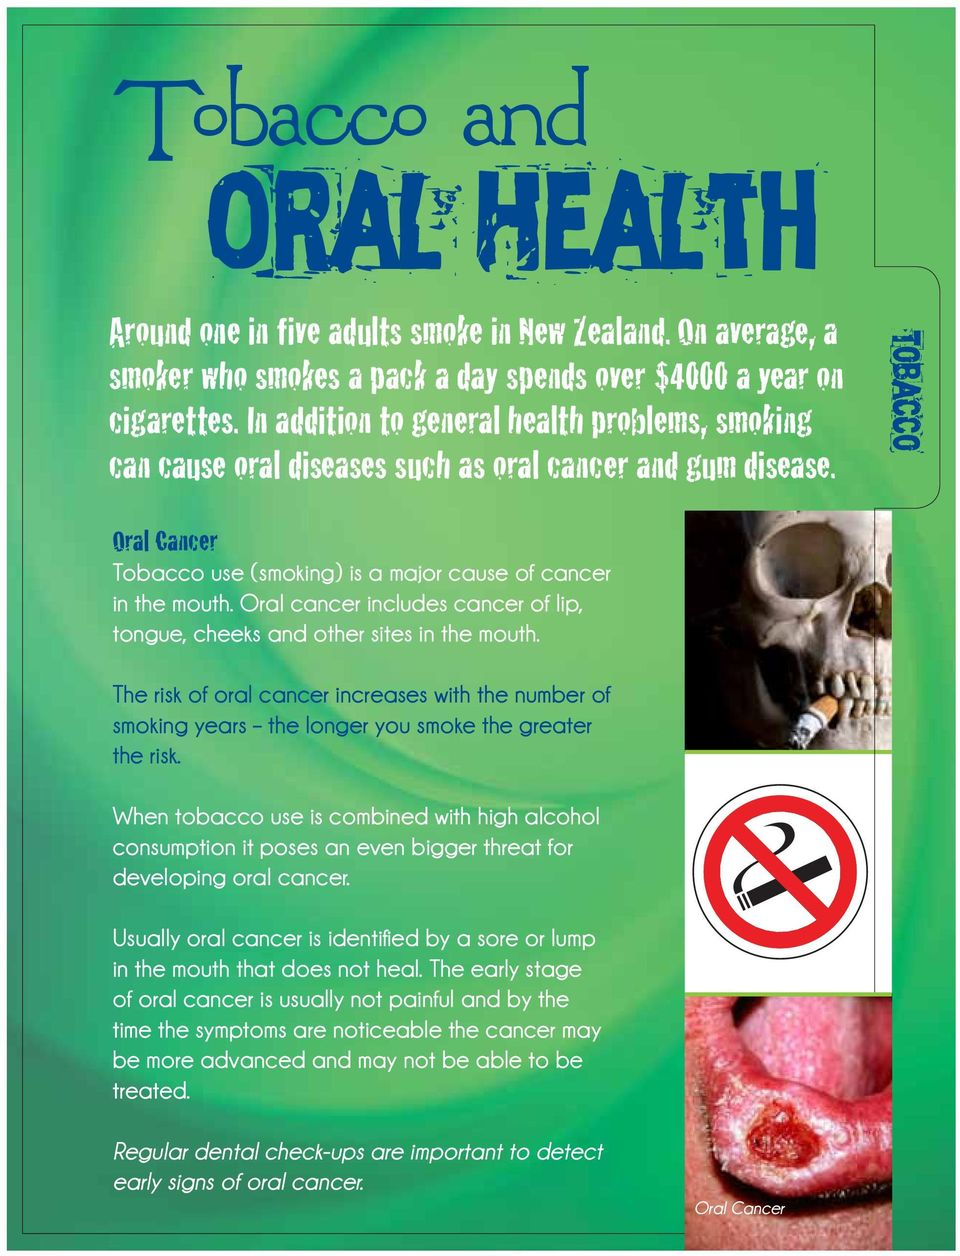 Oral cancer includes cancer of lip, tongue, cheeks and other sites in the mouth. The risk of oral cancer increases with the number of smoking years the longer you smoke the greater the risk.